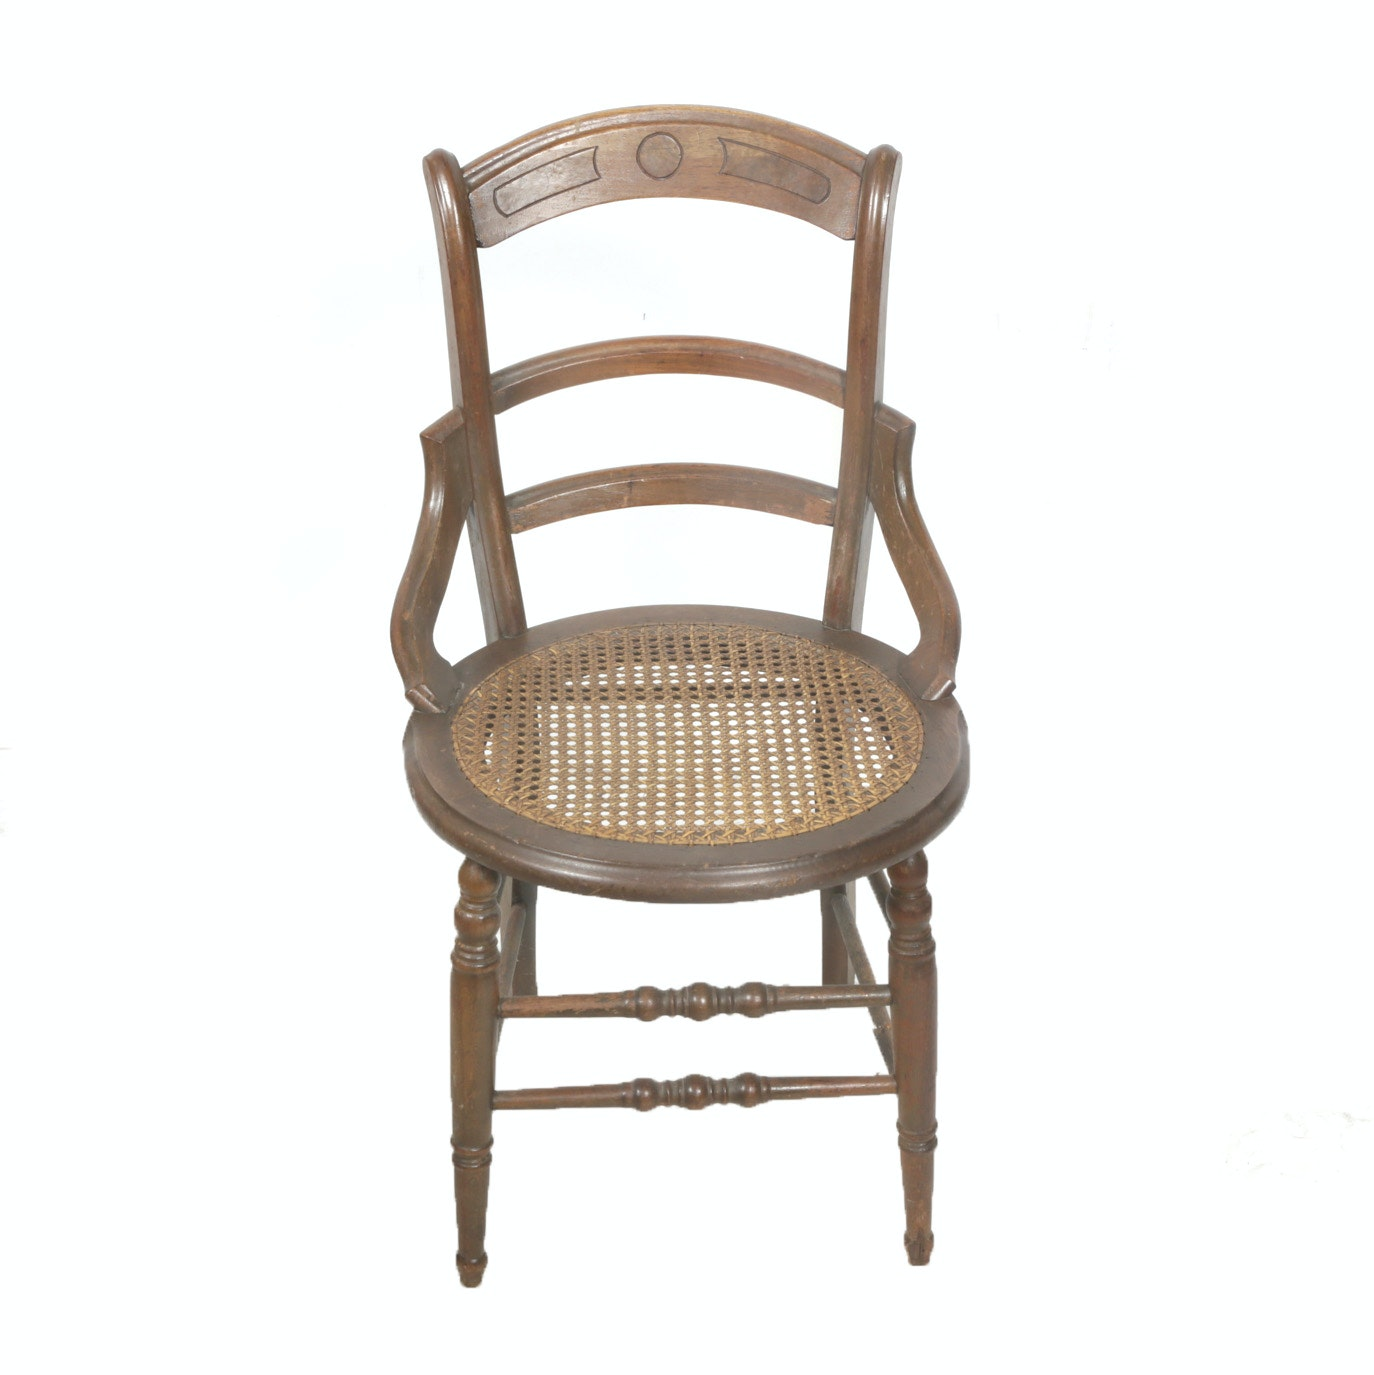 Vintage Walnut and Cane Seat Chair